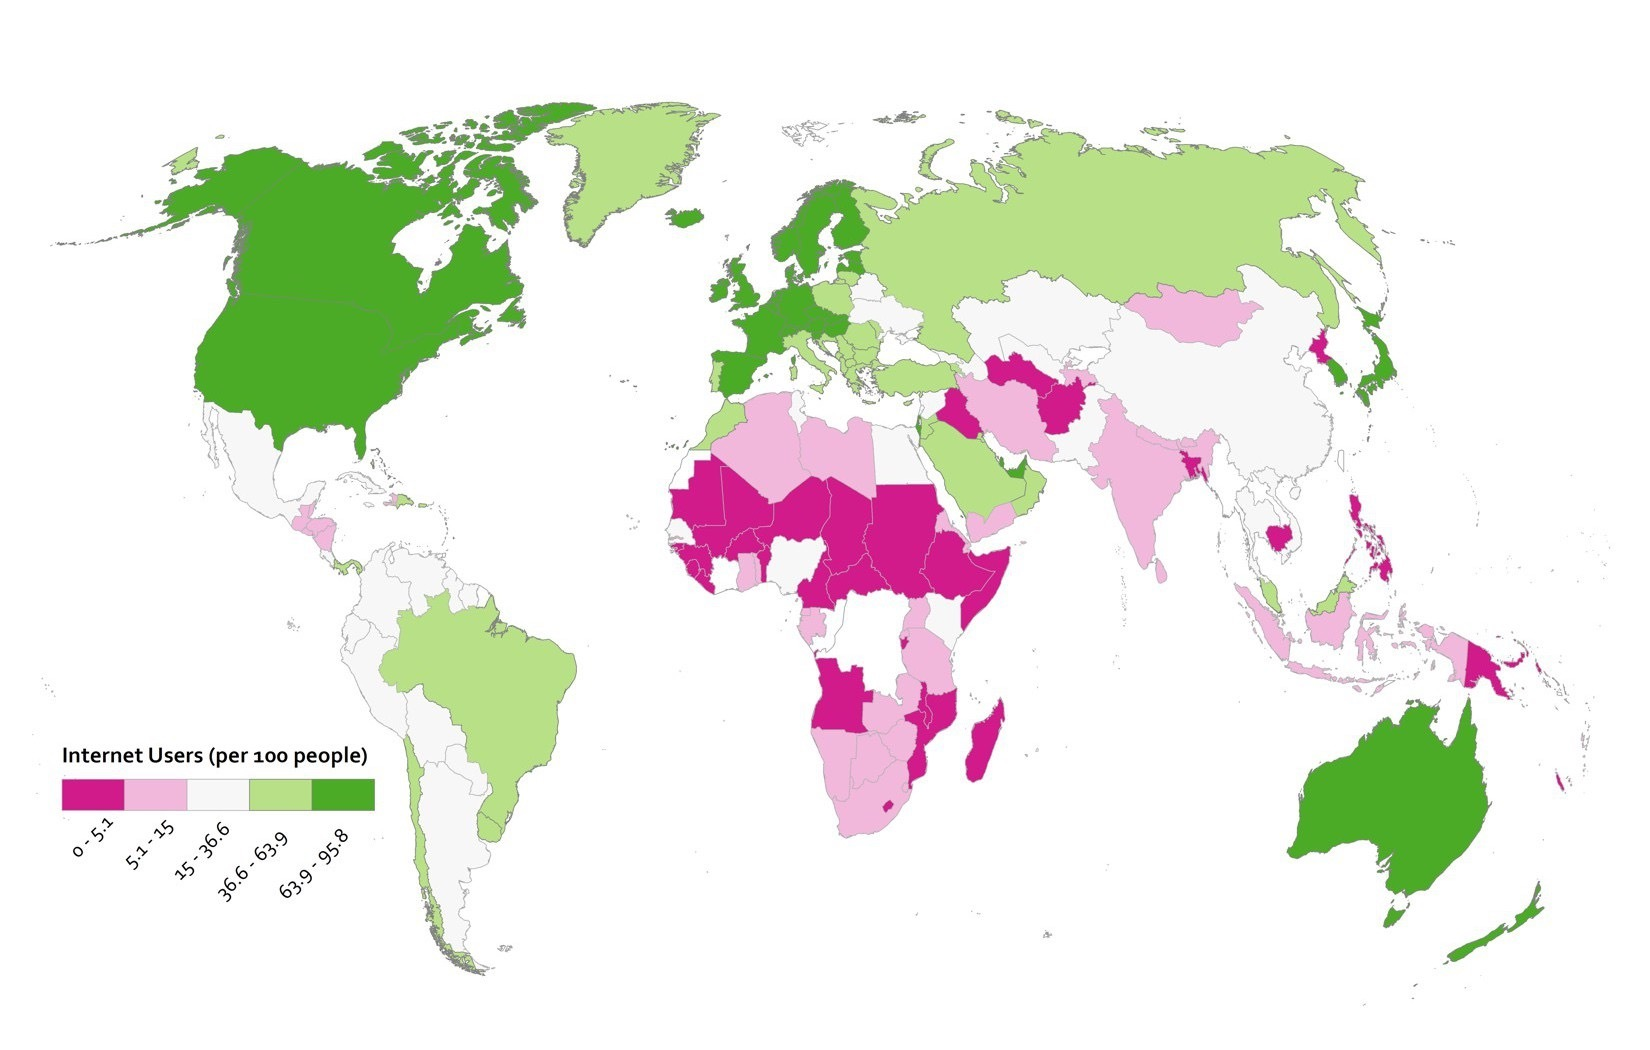 map using diverging color scheme. two shades of green =above middle and two shades of pink = below middle